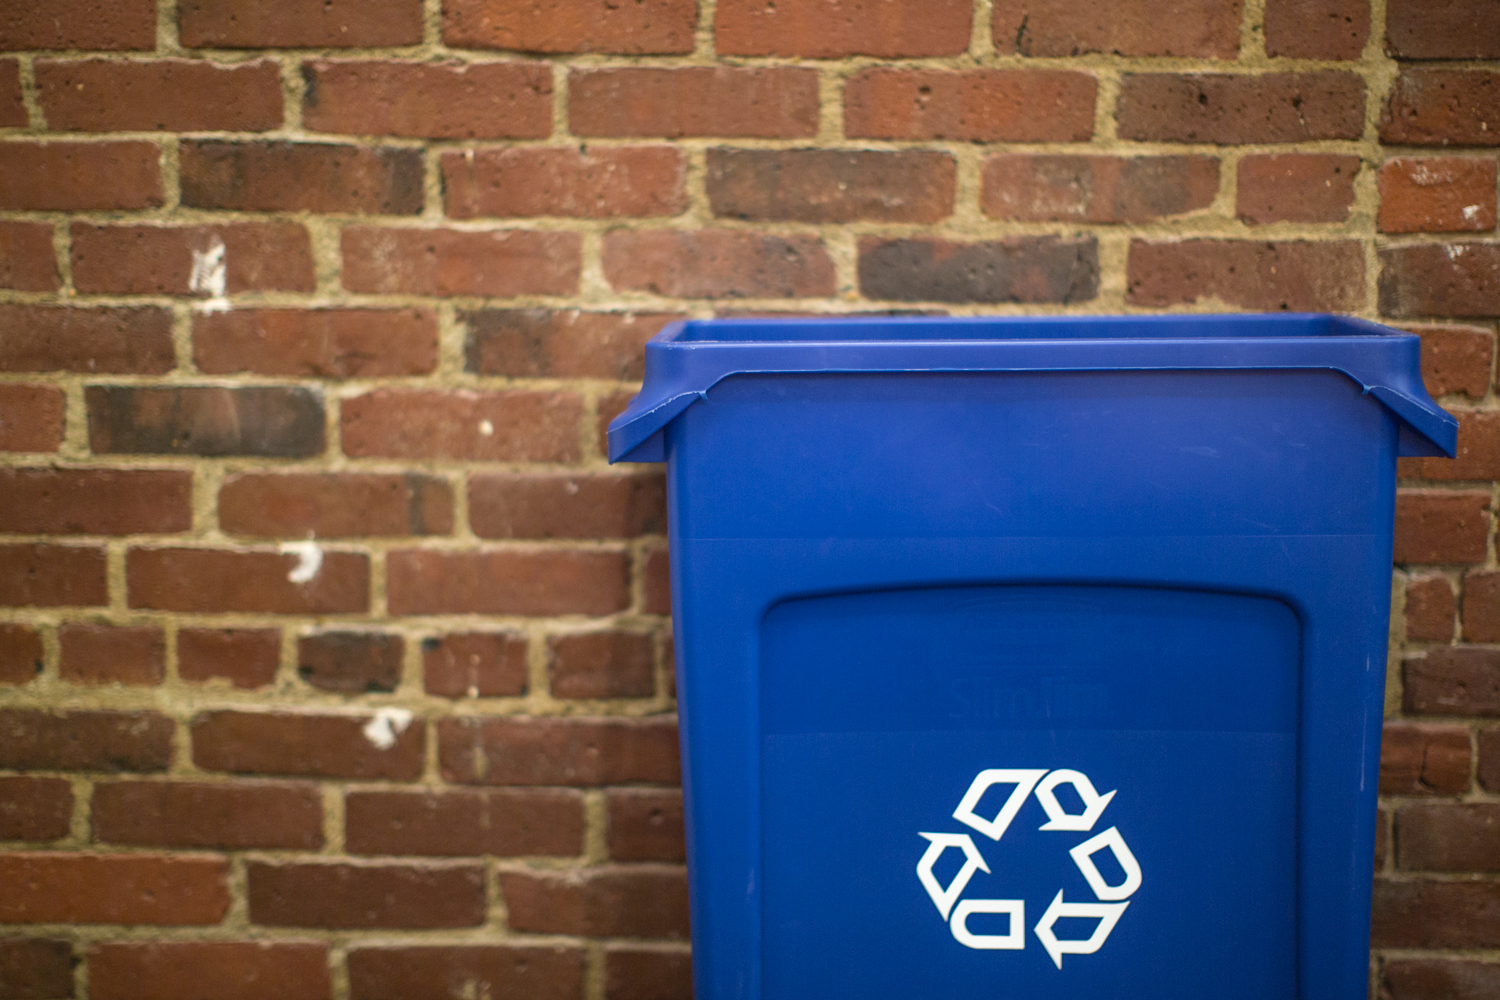 DCN responds to Extended Producer Responsibility proposals for waste services